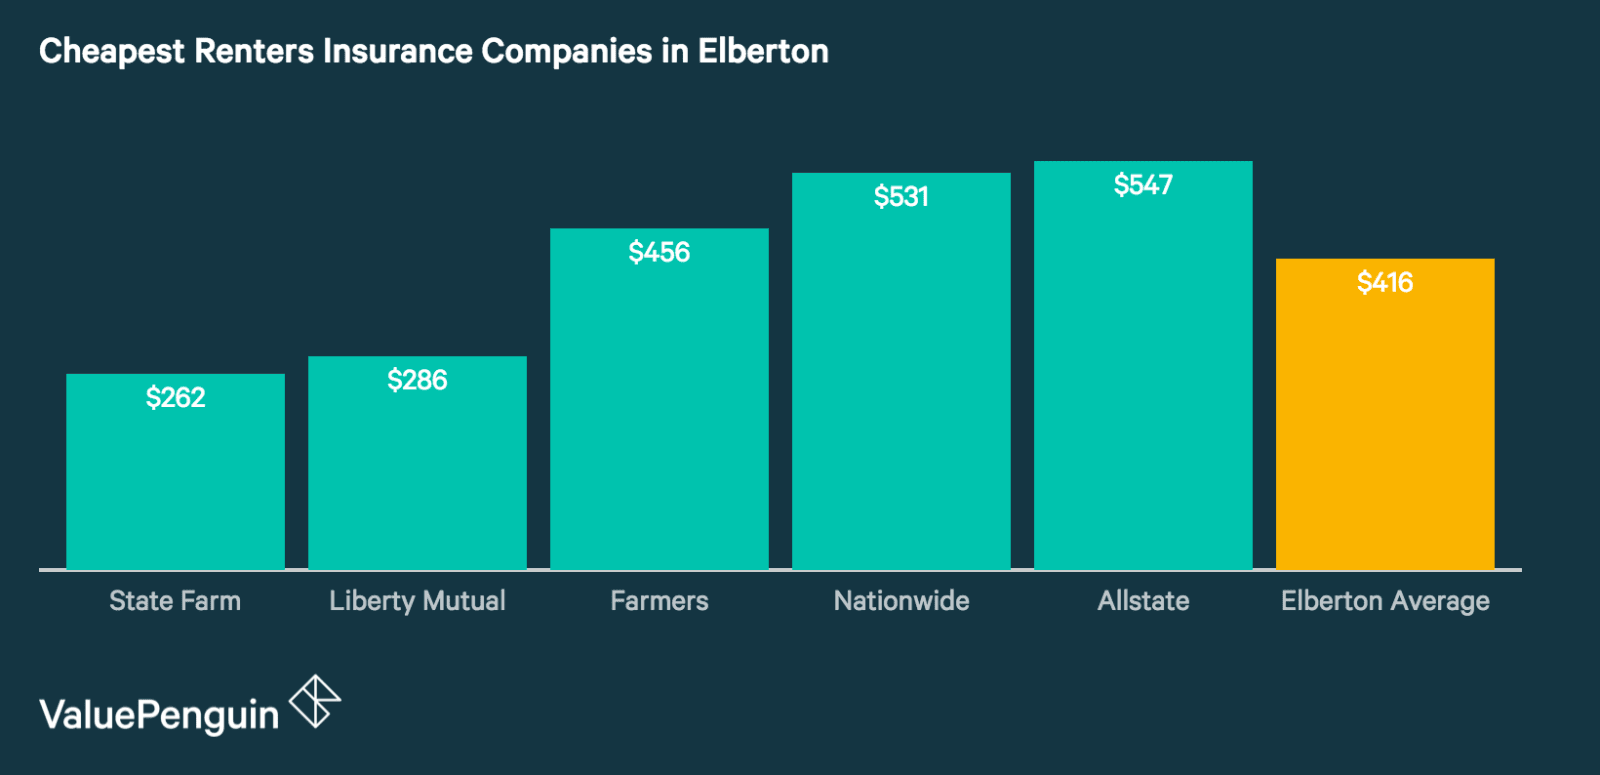 Renters Insurance Rates in Elberton